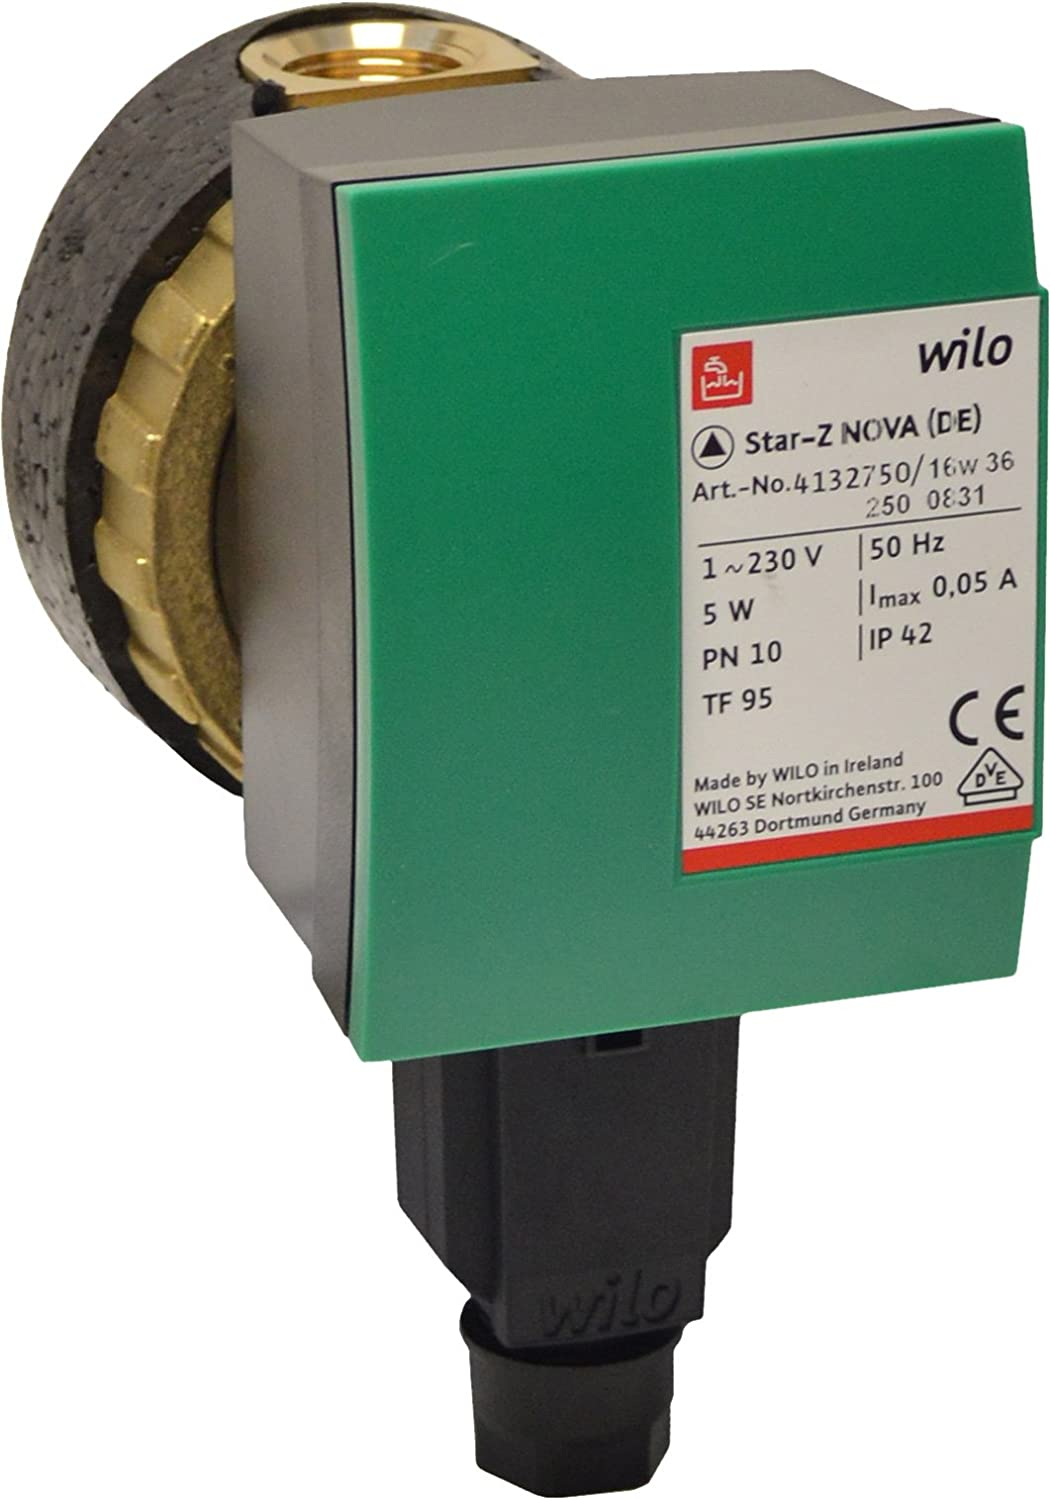 Wilo 4132760 Green / Black Star-Z NOVA Secondary Hot Water Circulating Pump, Glandless 4132750